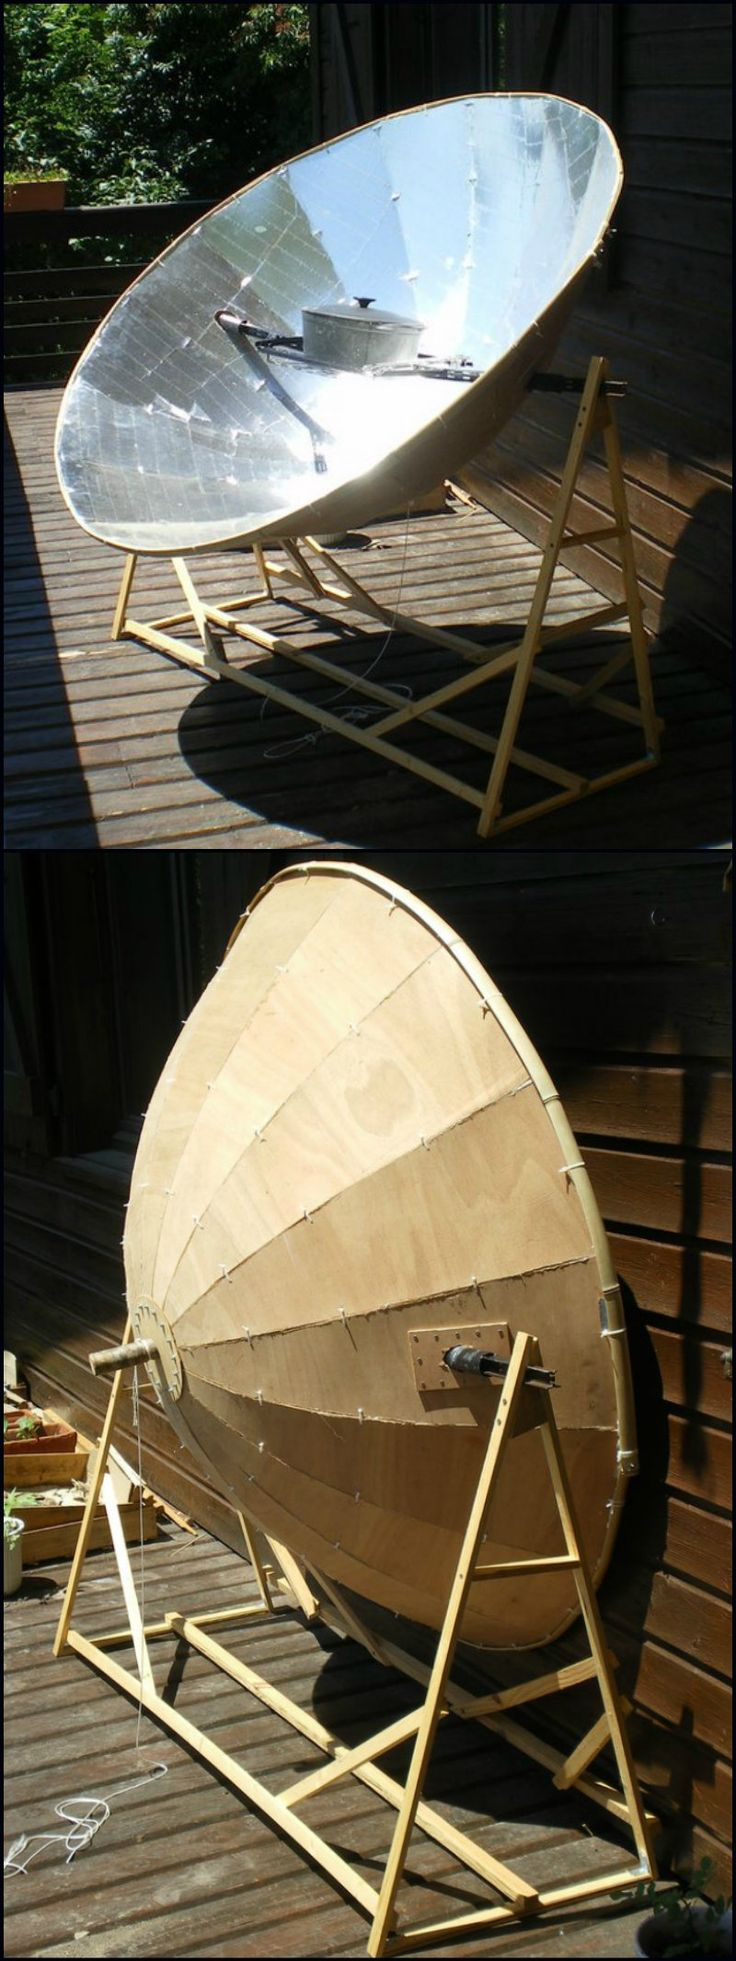 How To Build A Parabolic Solar Oven  http://theownerbuildernetwork.co/9d9u  Here's a clever project that can cook your food in an emergency situation when no alternative fuel is available.  But why wait? You can build one just for the fun of seeing how it works. It's a great project to do with the kids as it really highlights the power of our sun!